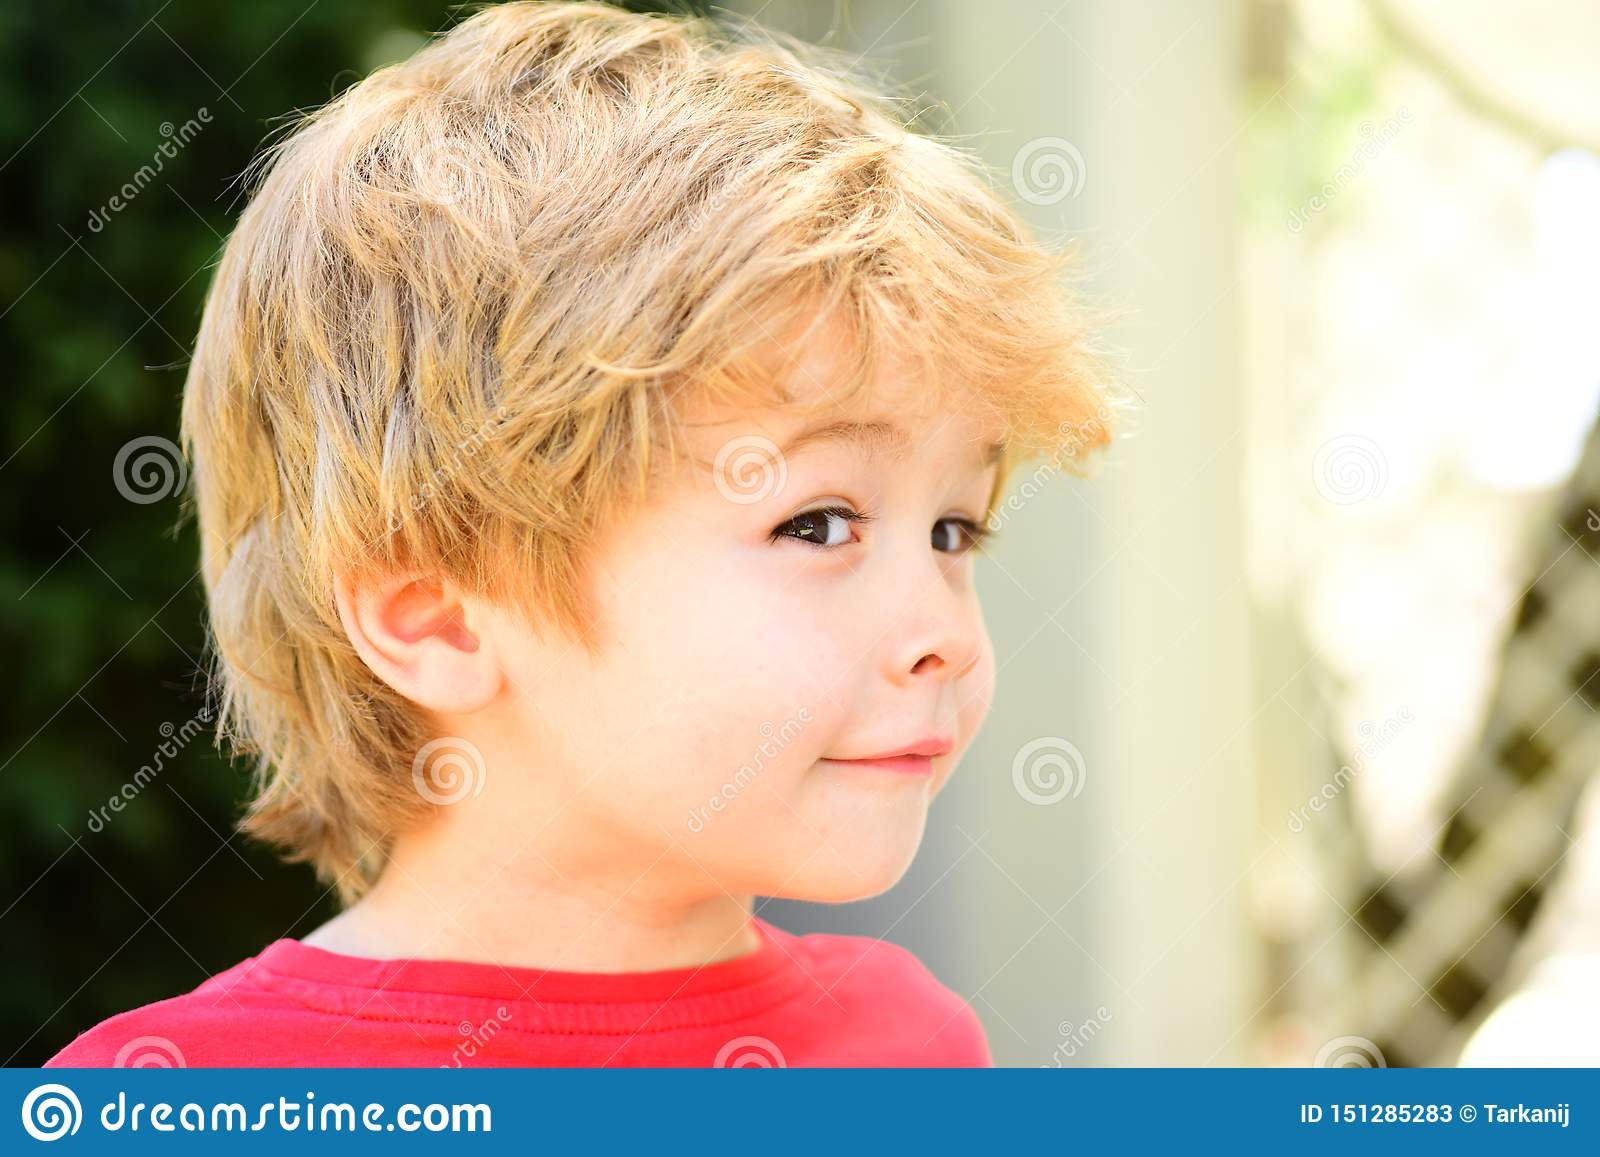 Sly Playful Baby Boy Funny Child With Cute Hairstyle Smart